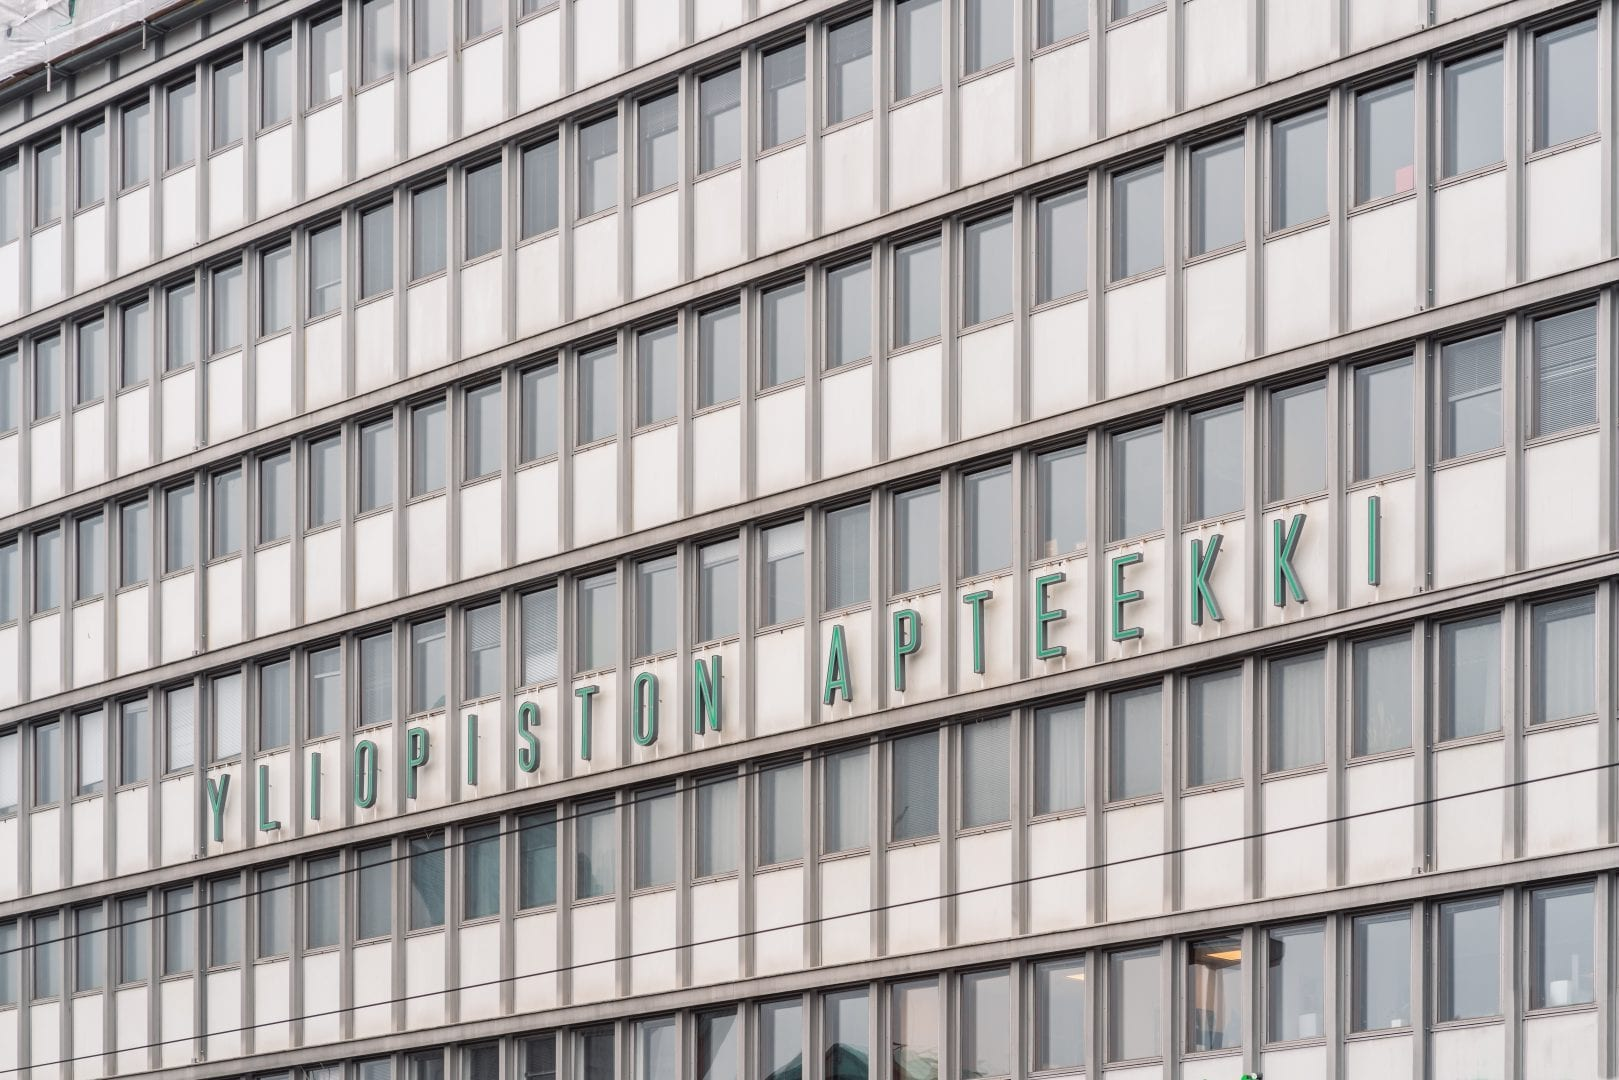 A closeup image of the Kaivotalo building in central Helsinki. It depicts 6 even rows of rectangular windows in a 60-degree perspective angle, most of which have blinders blocking the view. In the center, dark green letters spell the name of a pharmacy.